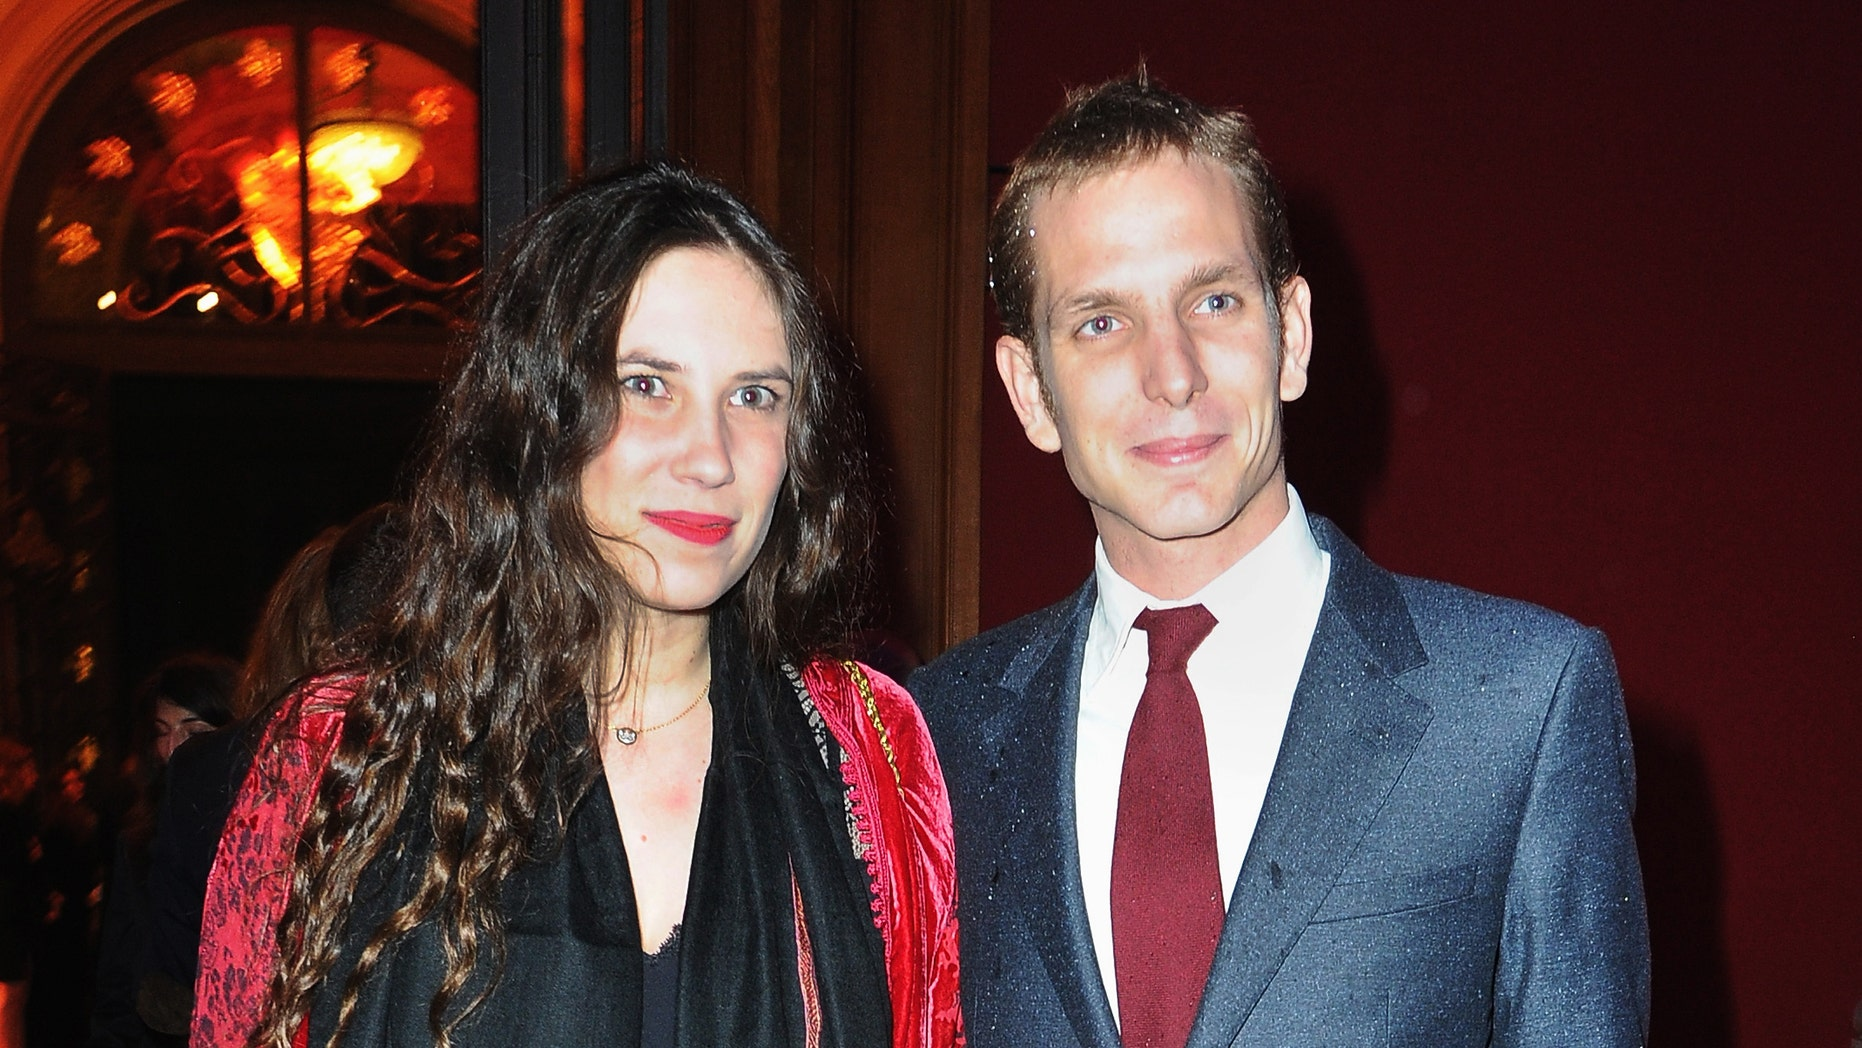 Tatiana Santo Domingo and Andrea Casiraghi attend the Dior Cruise Collection 2014 cocktail on May 18, 2013 in Monaco.